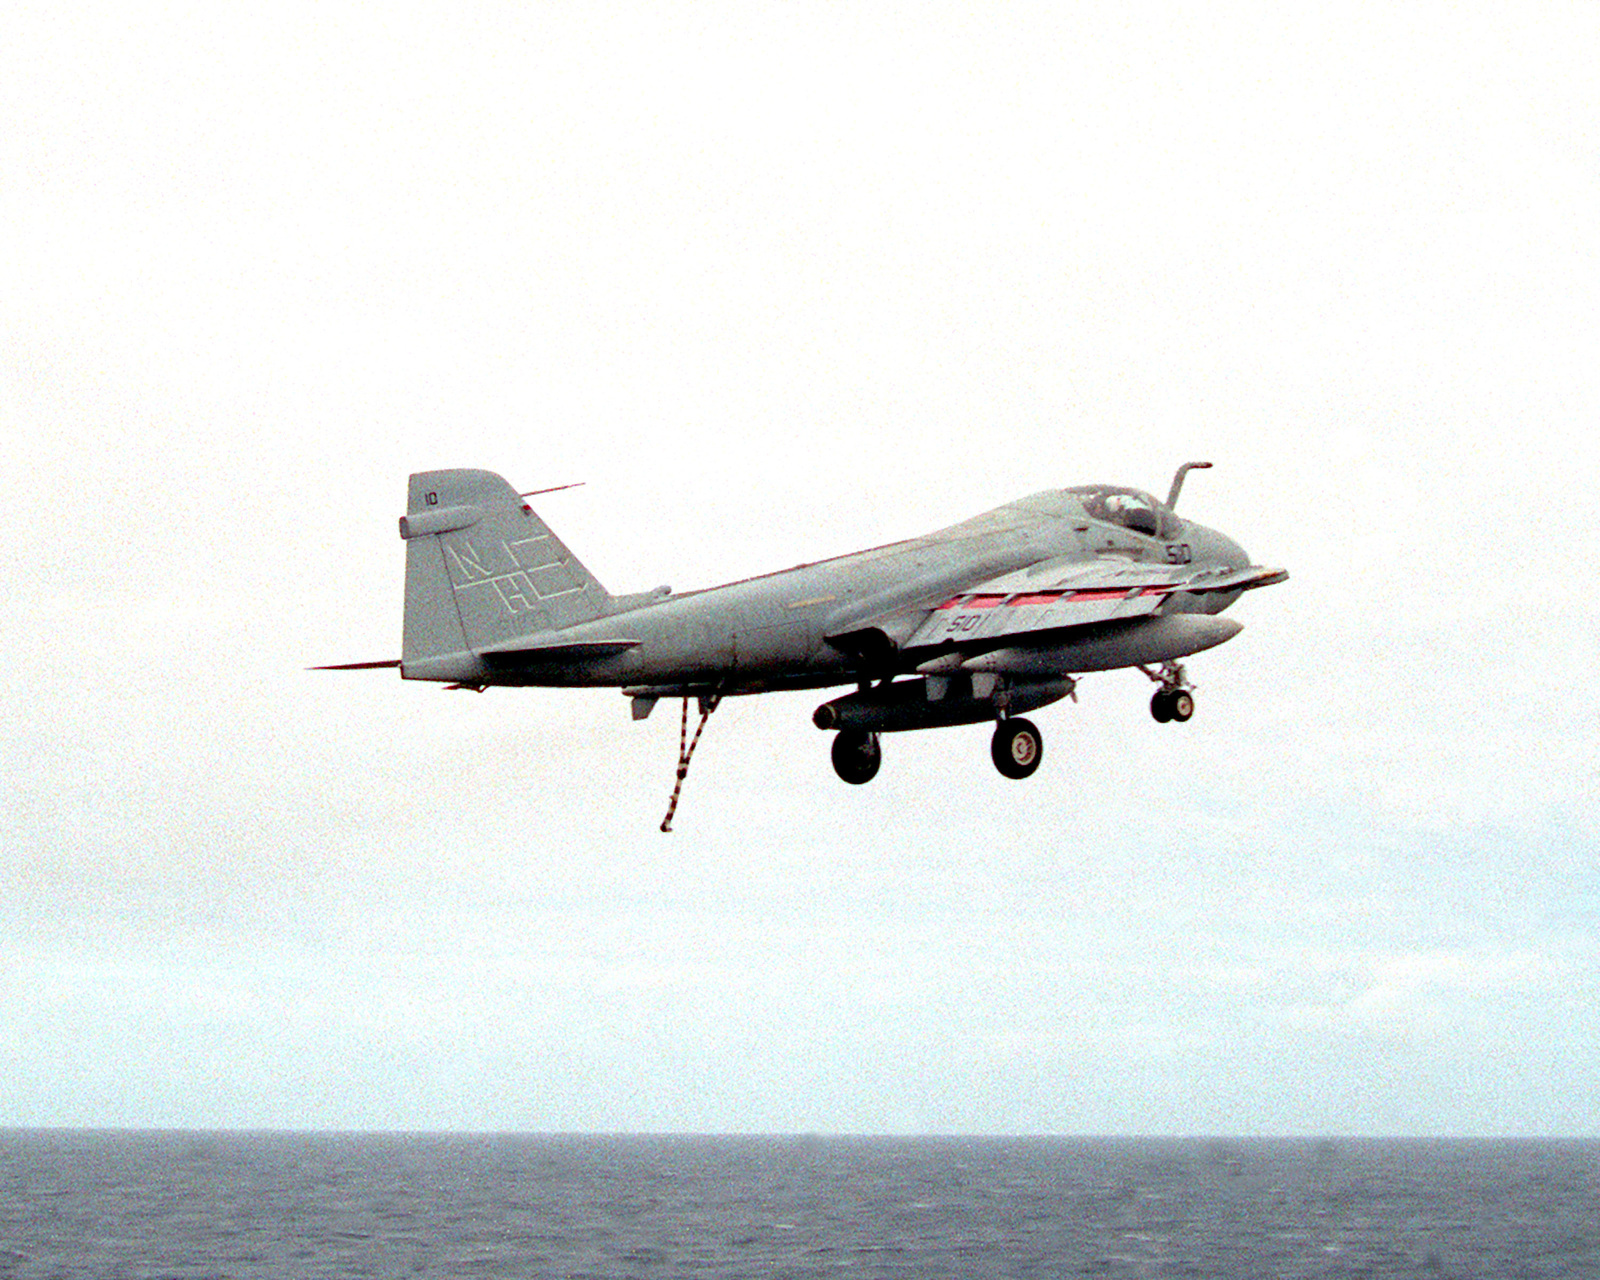 An Attack Squadron 95 (VA-95) A-6E Intruder aircraft gains altitude while flying off after missing the arresting wire on the flight deck of the nuclear-powered aircraft carrier USS ABRAHAM LINCOLN (CVN-72). The LINCOLN is underway during its circumnavigation of South America